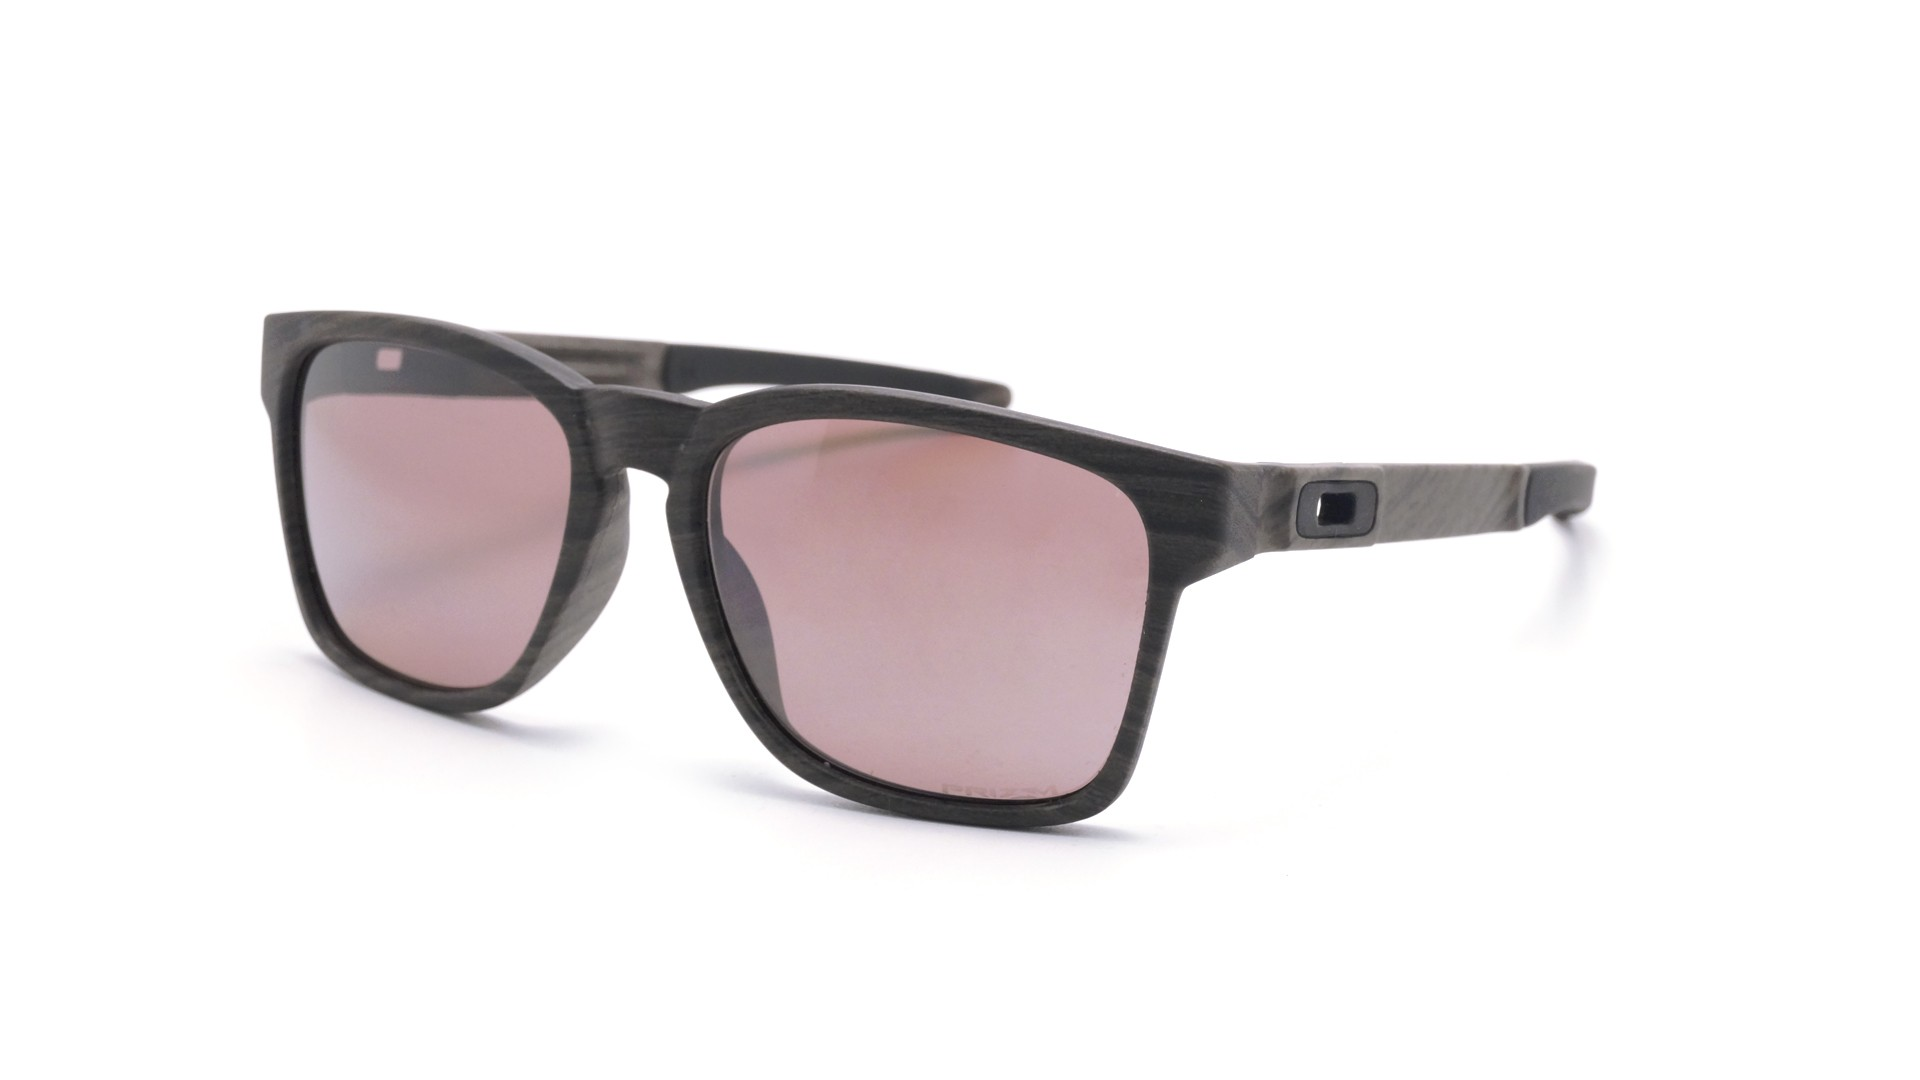 oakley womens dangerous asian fit sunglasses  oakley catalyst woodgrain matte oo9272 20 56 16 polarized 104,08 \u20ac